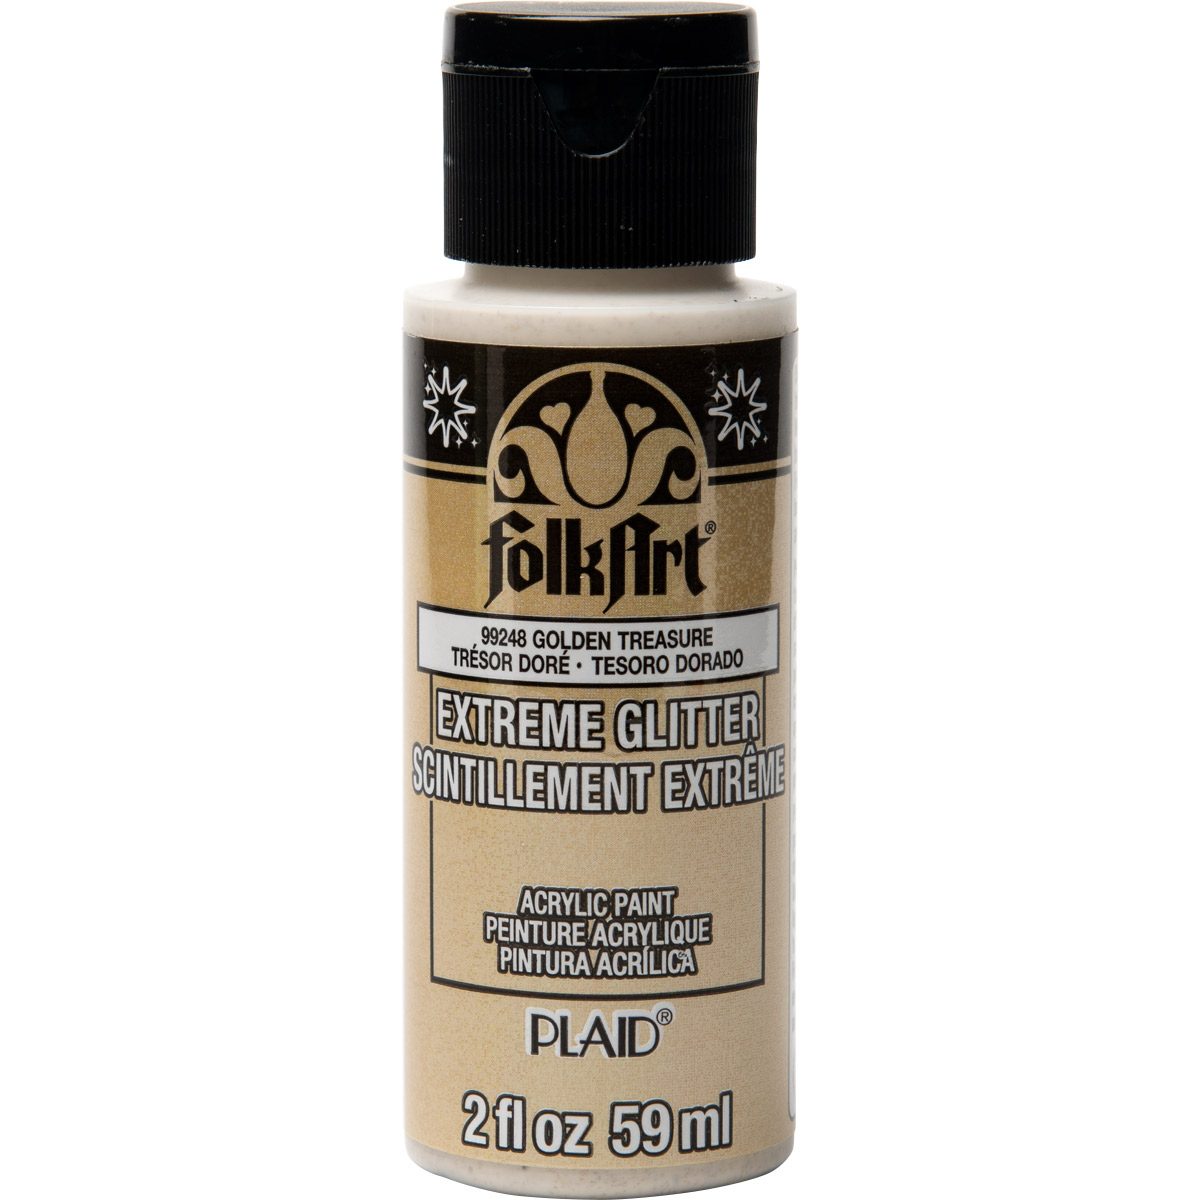 FolkArt ® Extreme Glitter™ - Golden Treasure, 2 oz.